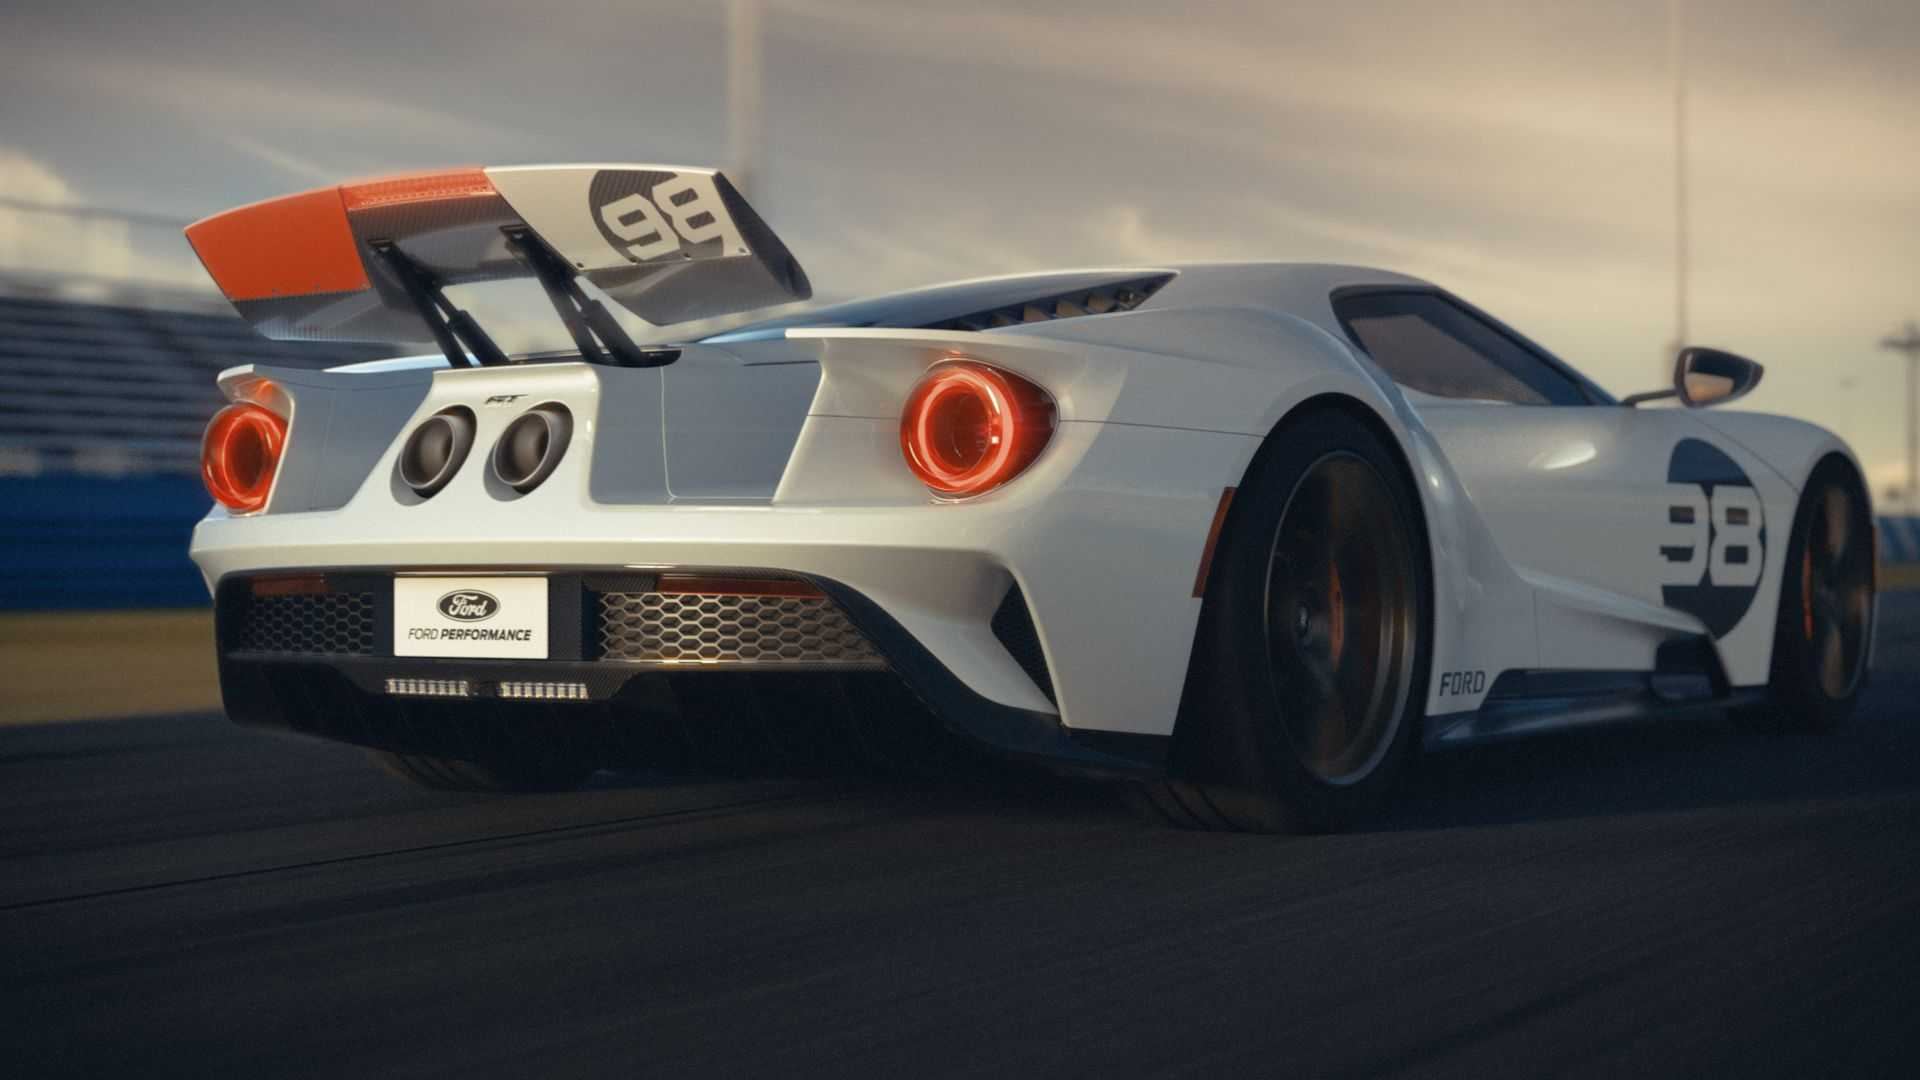 2021-ford-gt-heritage-edition-rear-close-up.jpg